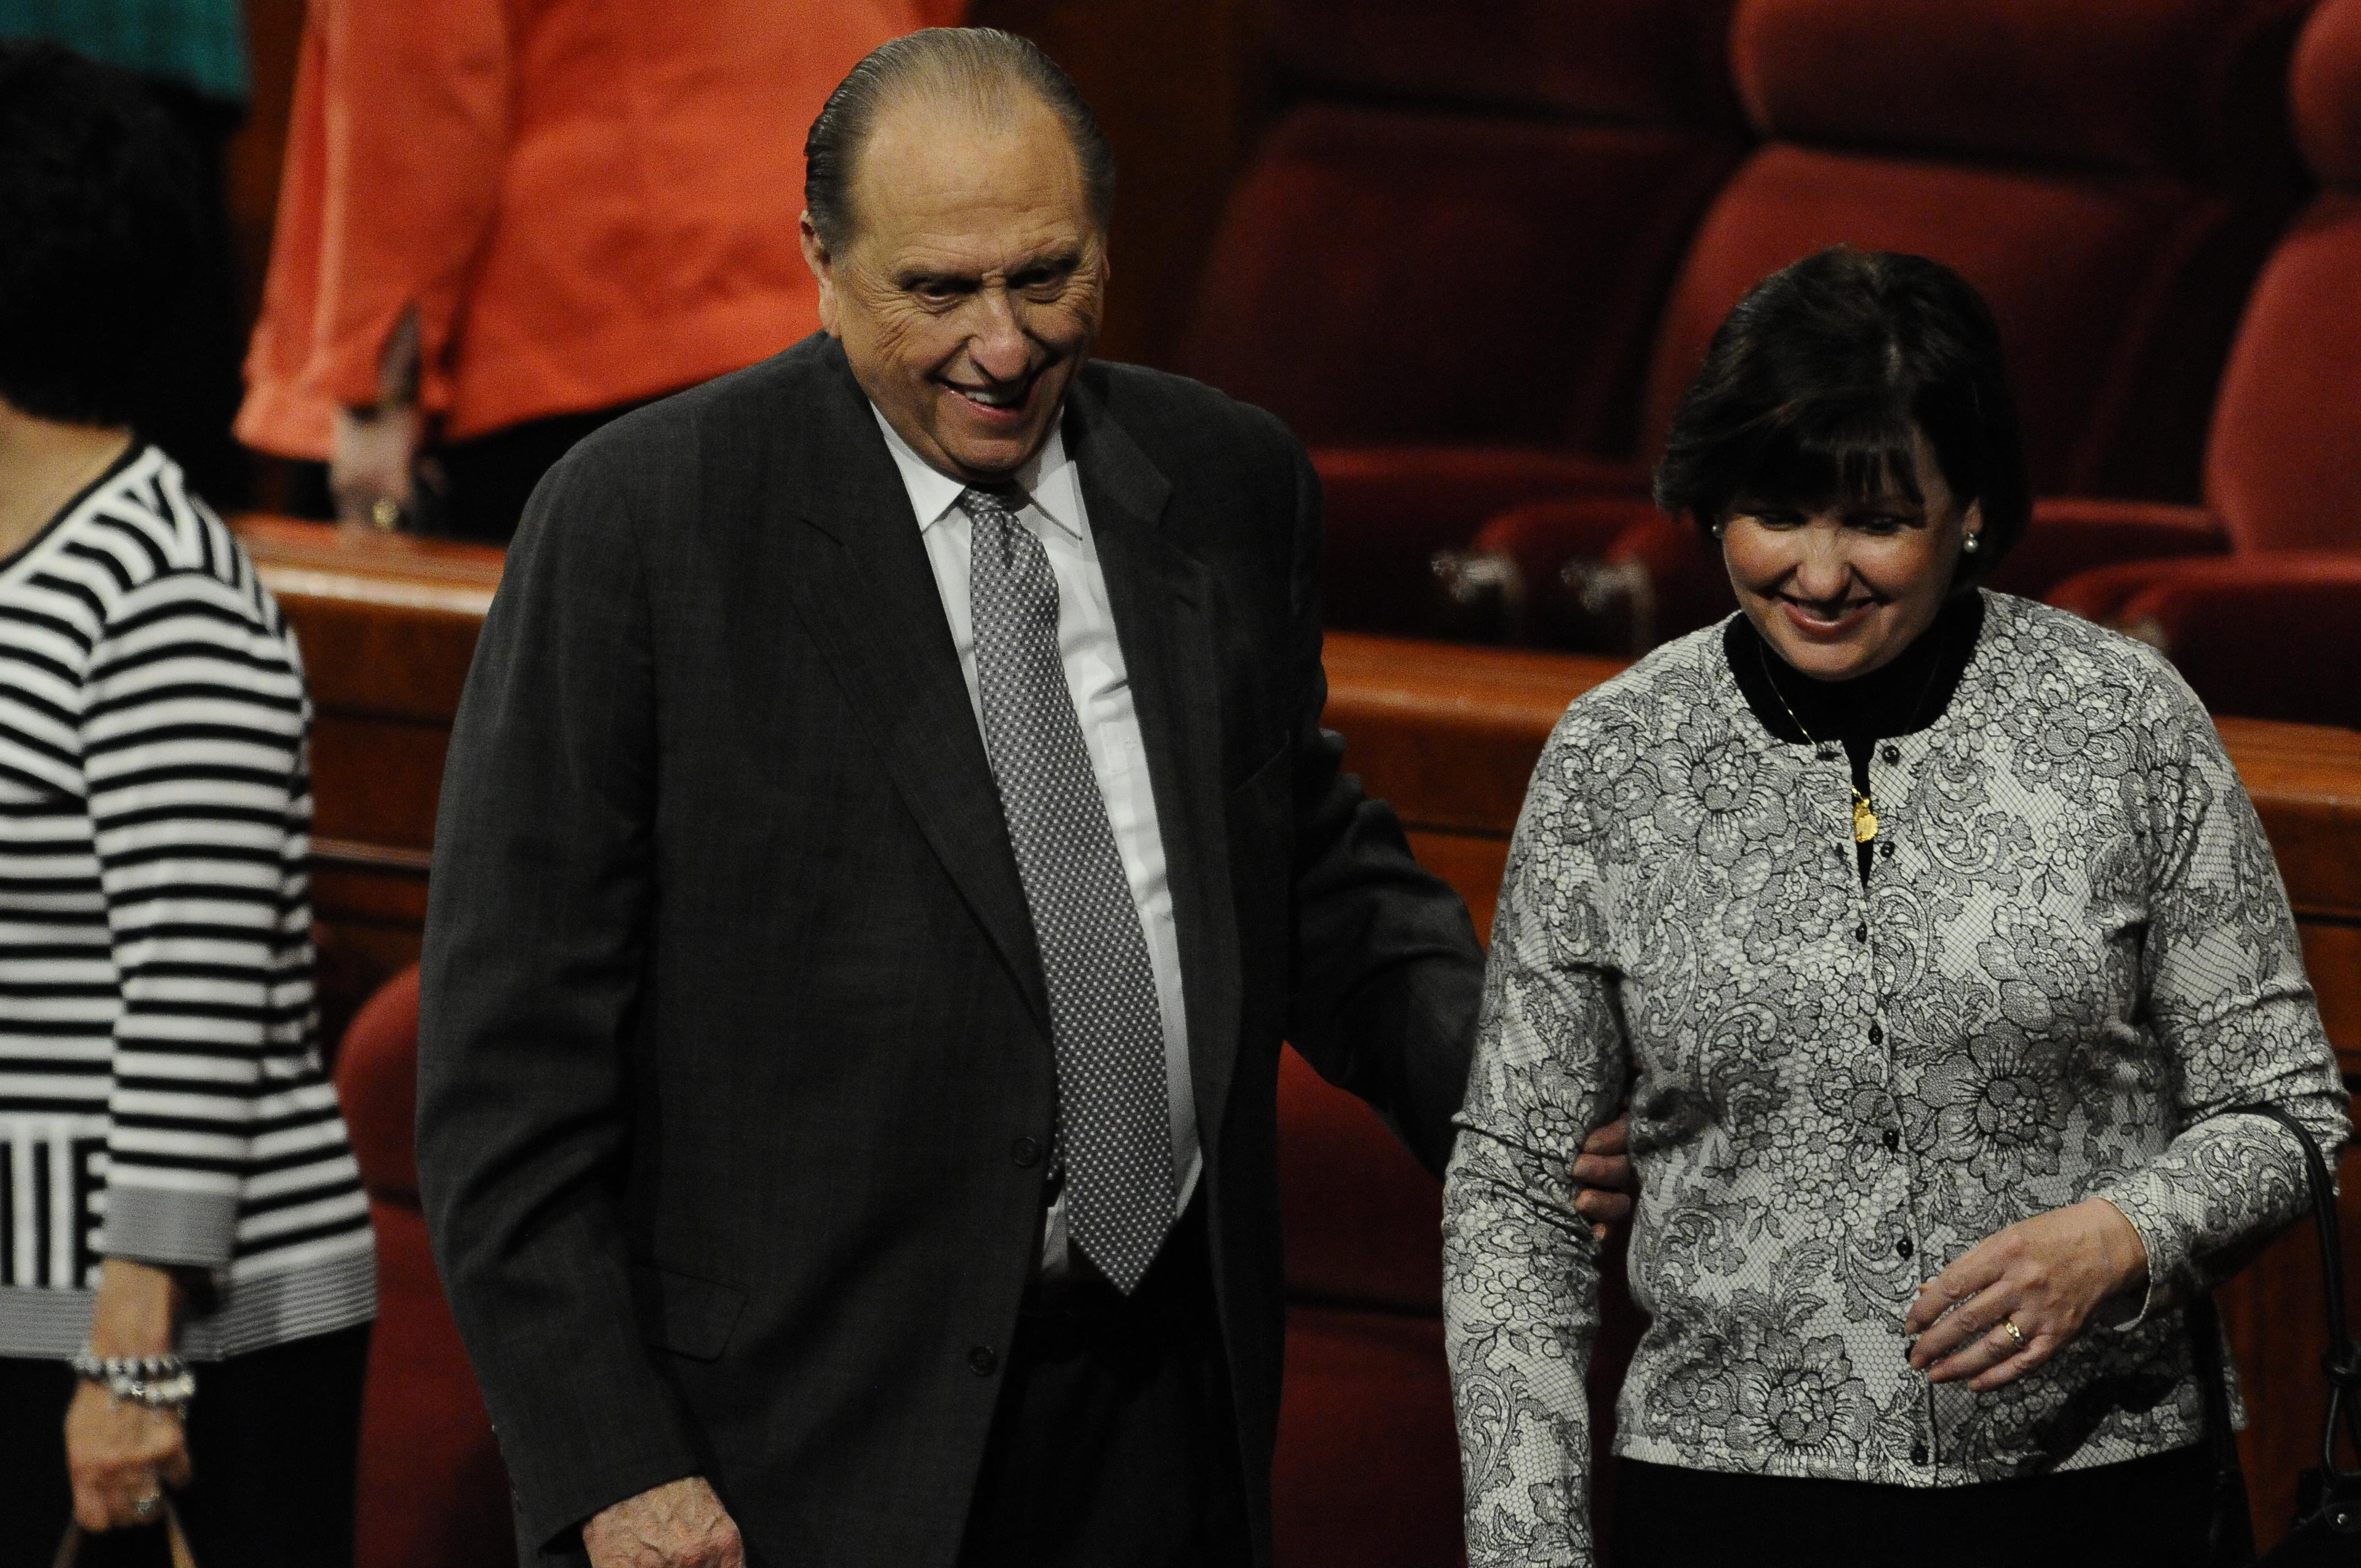 President Monson with his daughter, Ann, at the October 2010 General Conference. (Photo: MormonNewsroom.org)<p></p>